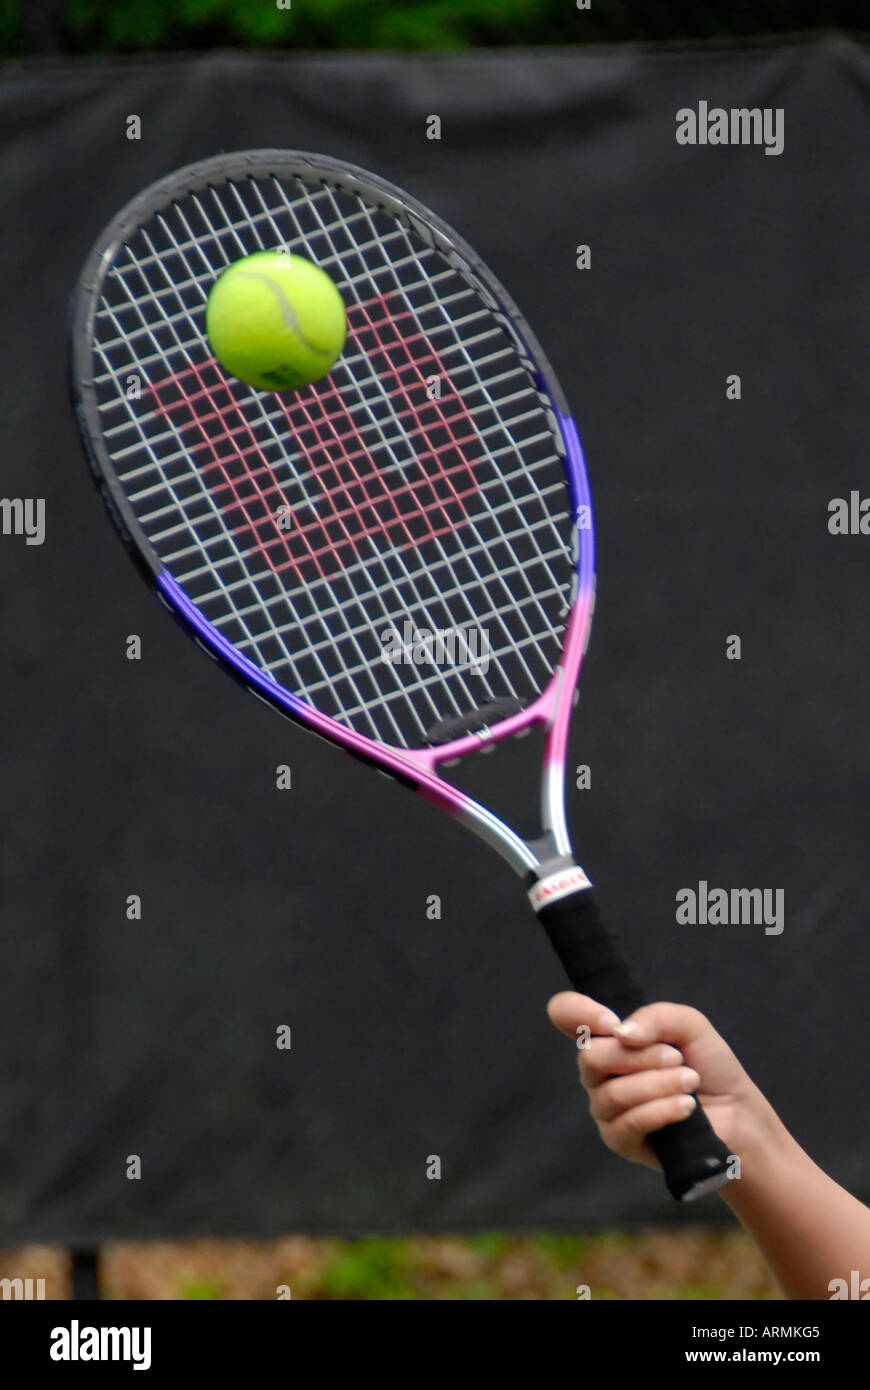 Middle school and high school age teenagers take Tennis lesson in a summer enrichment and development public city program - Stock Image